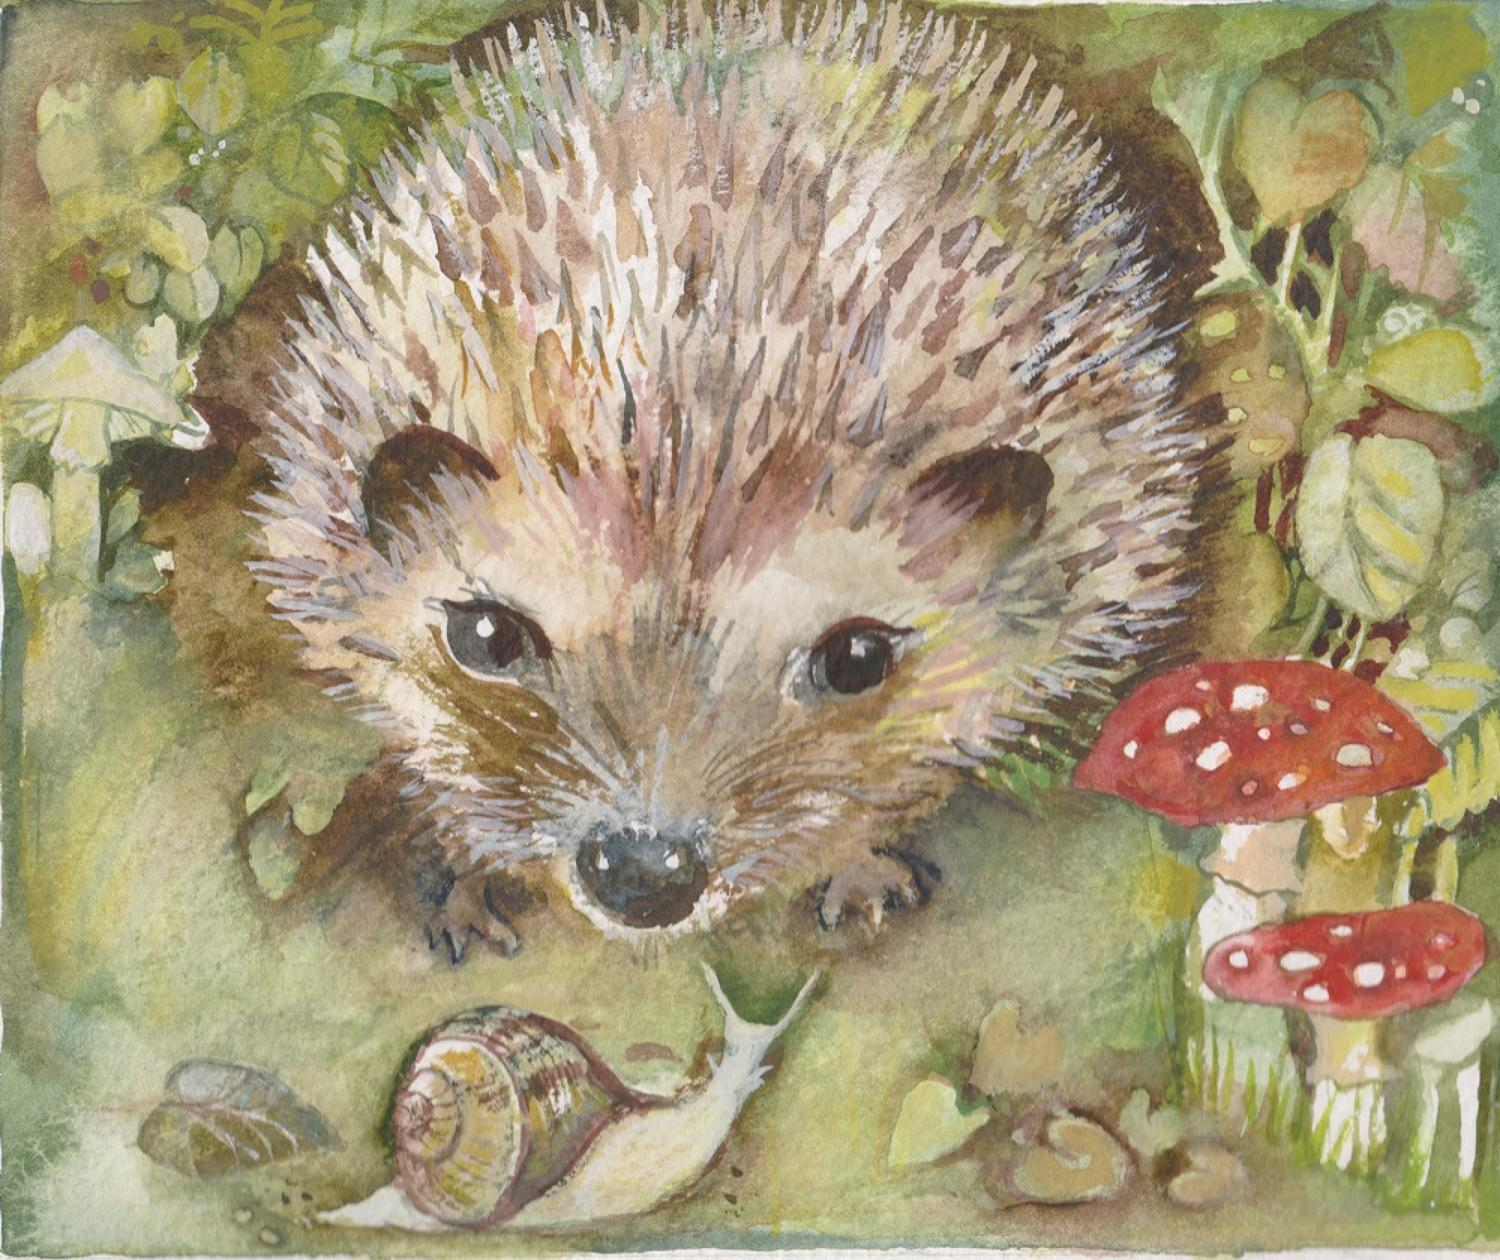 Hedgehog & toadstools